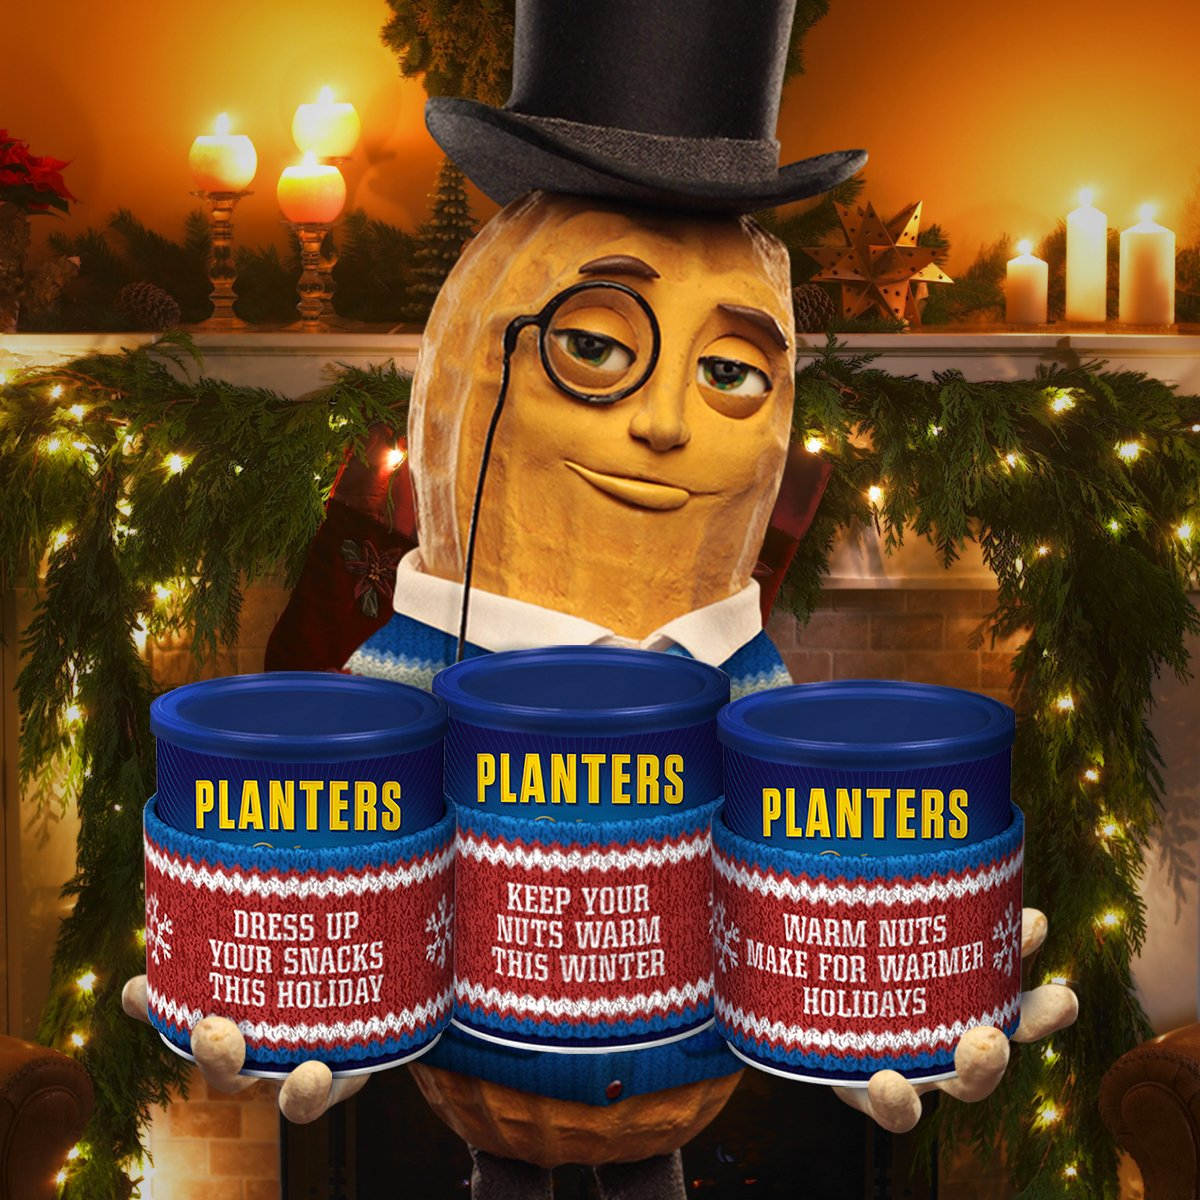 Christmas Planters Peanuts.Mr Peanut On Twitter It S The Most Wonderful Time Of Year